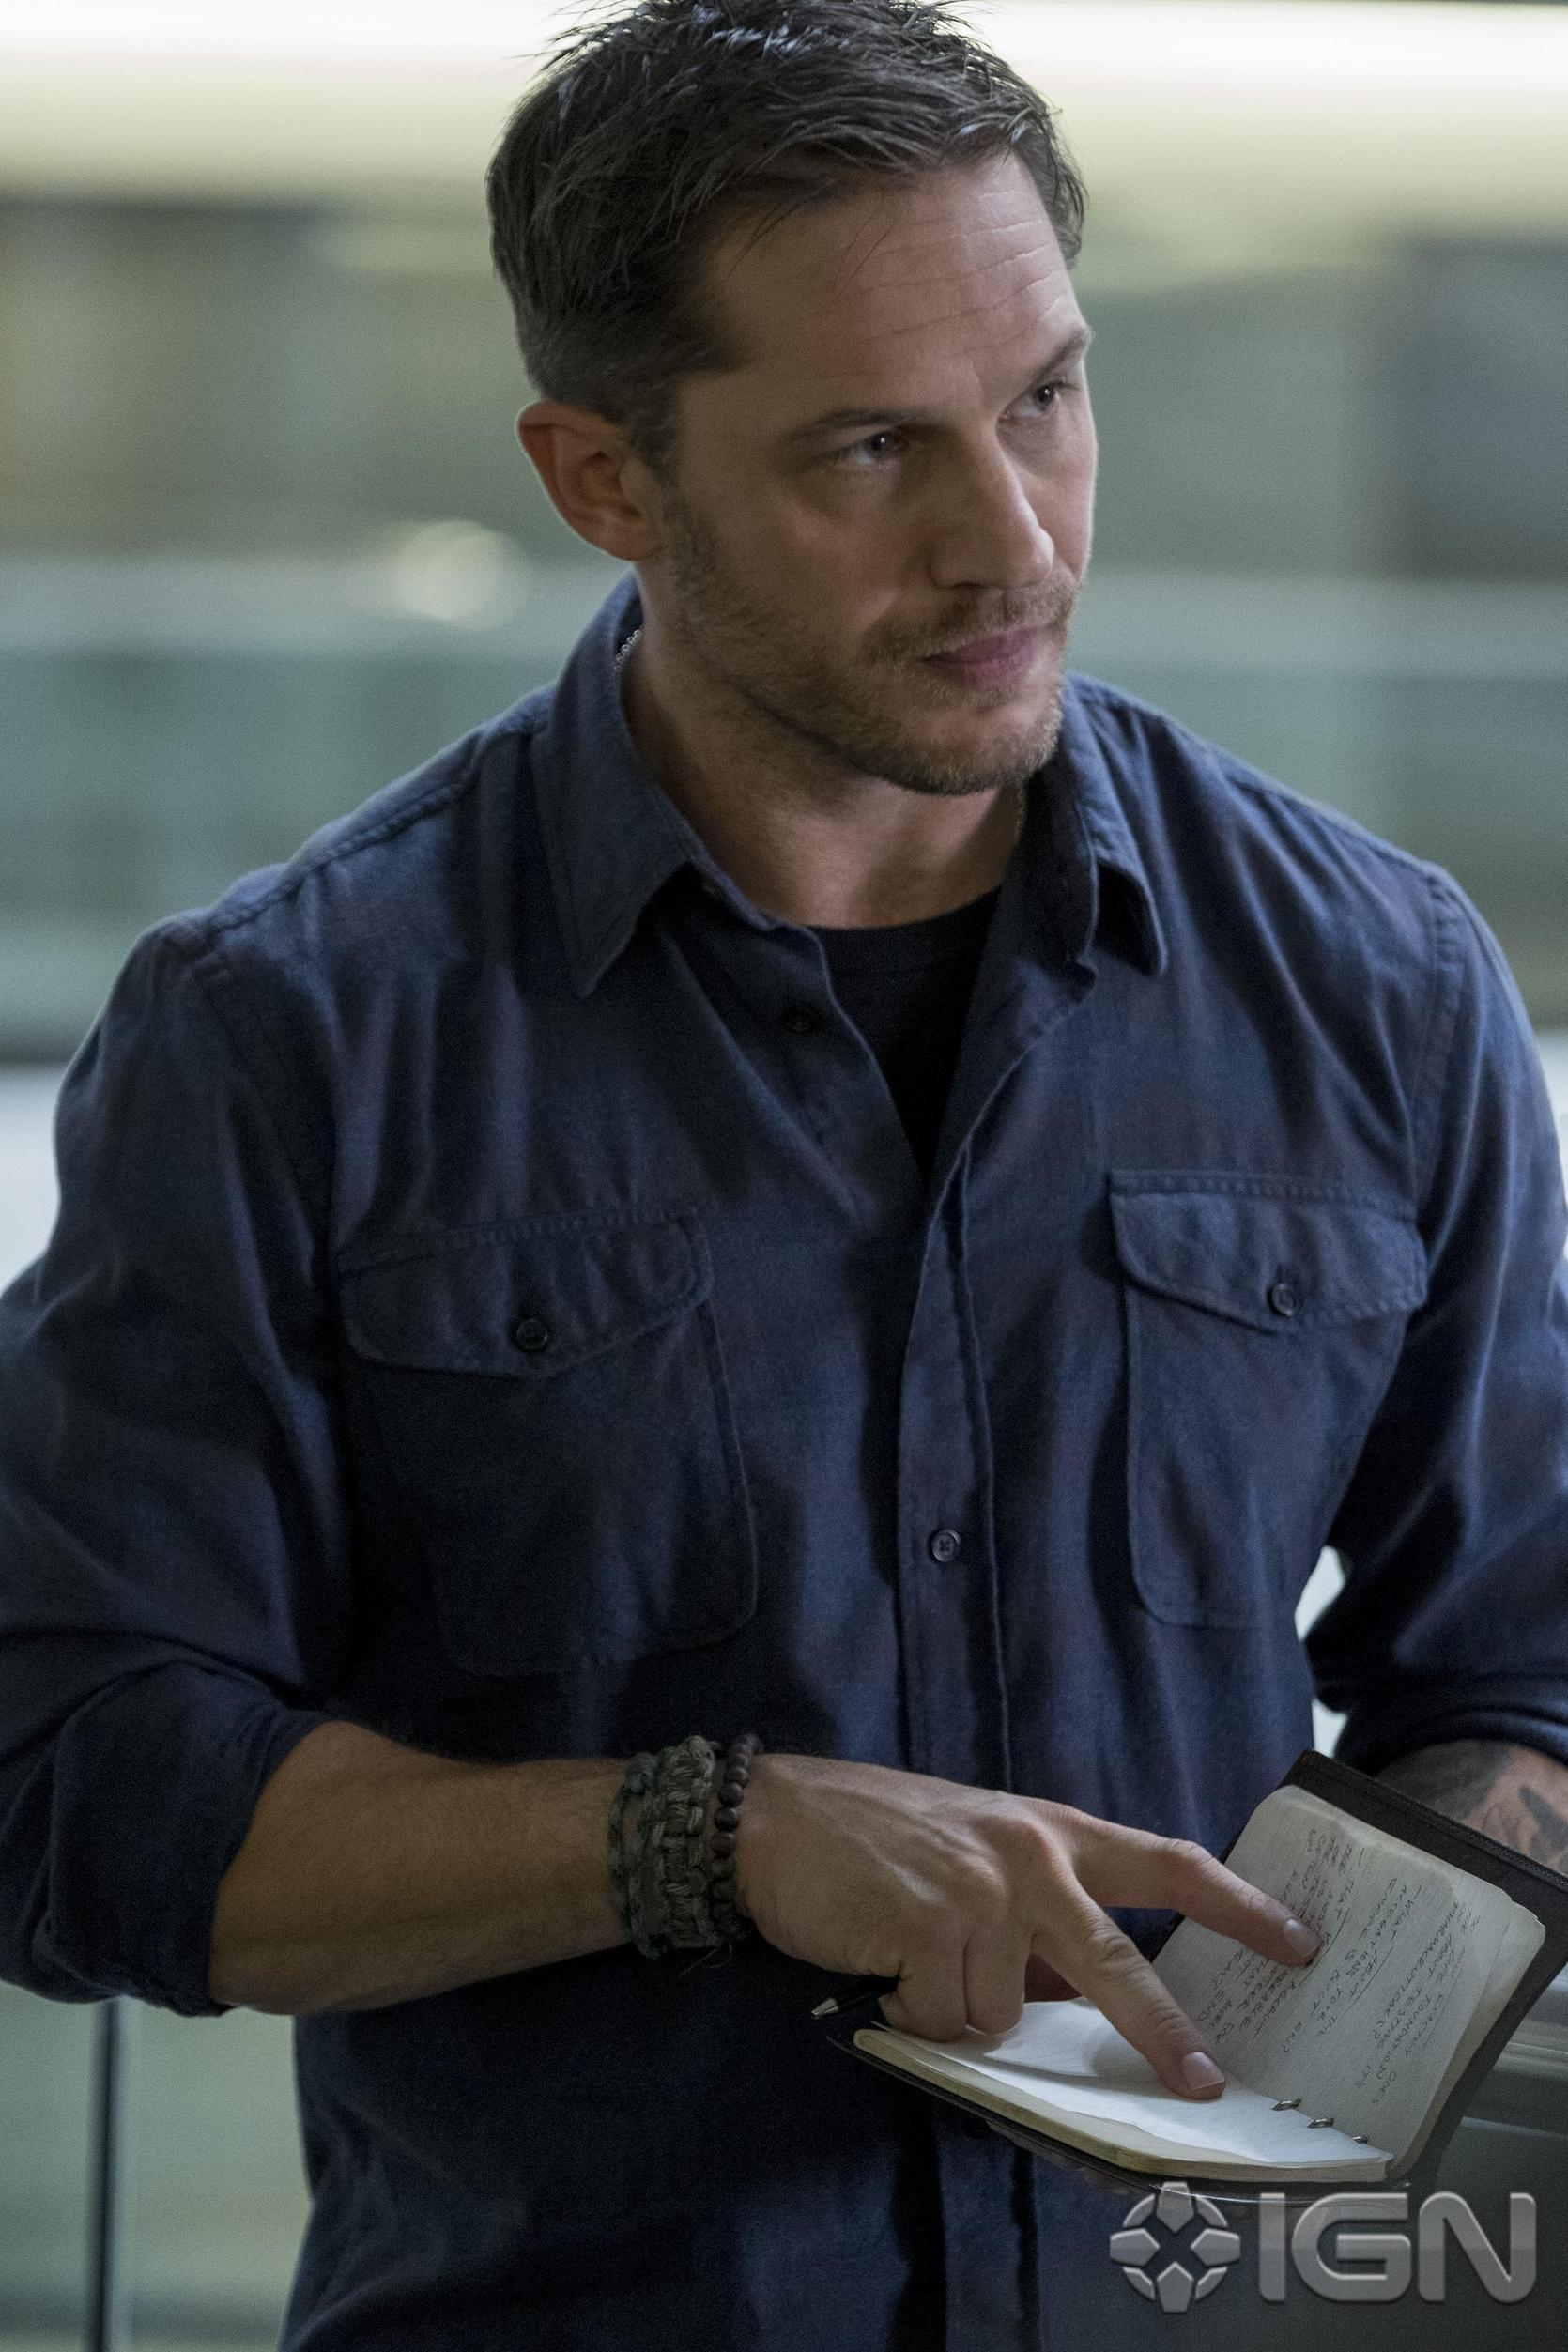 https://vignette.wikia.nocookie.net/marvelmovies/images/4/49/Venom_First_Look_Tom_Hardy_as_Eddie_Brock.jpg/revision/latest?cb=20180111181823